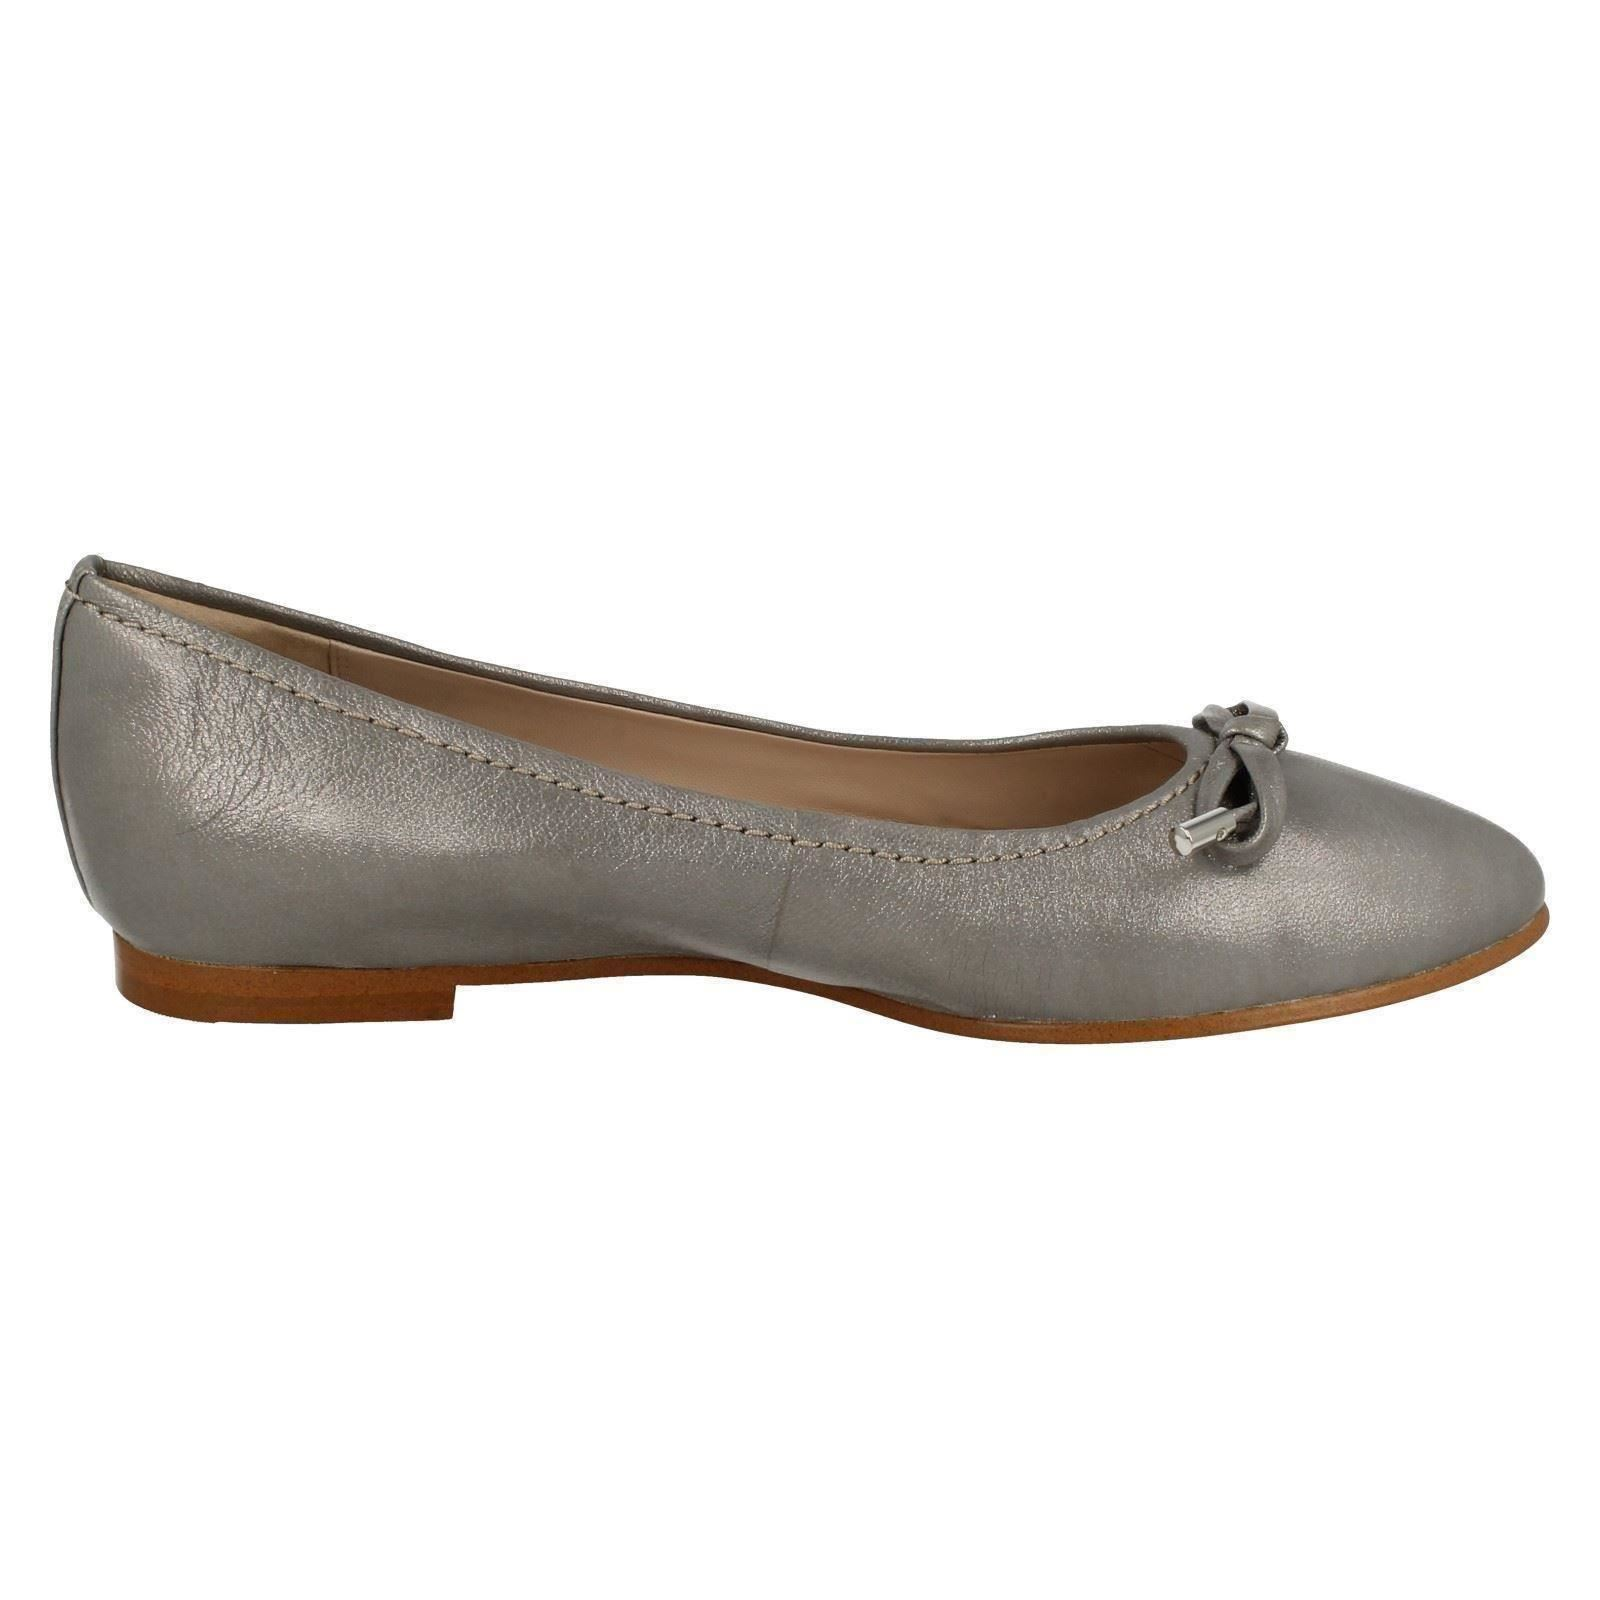 9bf8032fbb0c8 Ladies-Clarks-Grace-Lily-Flat-Dolly-Shoes thumbnail 34